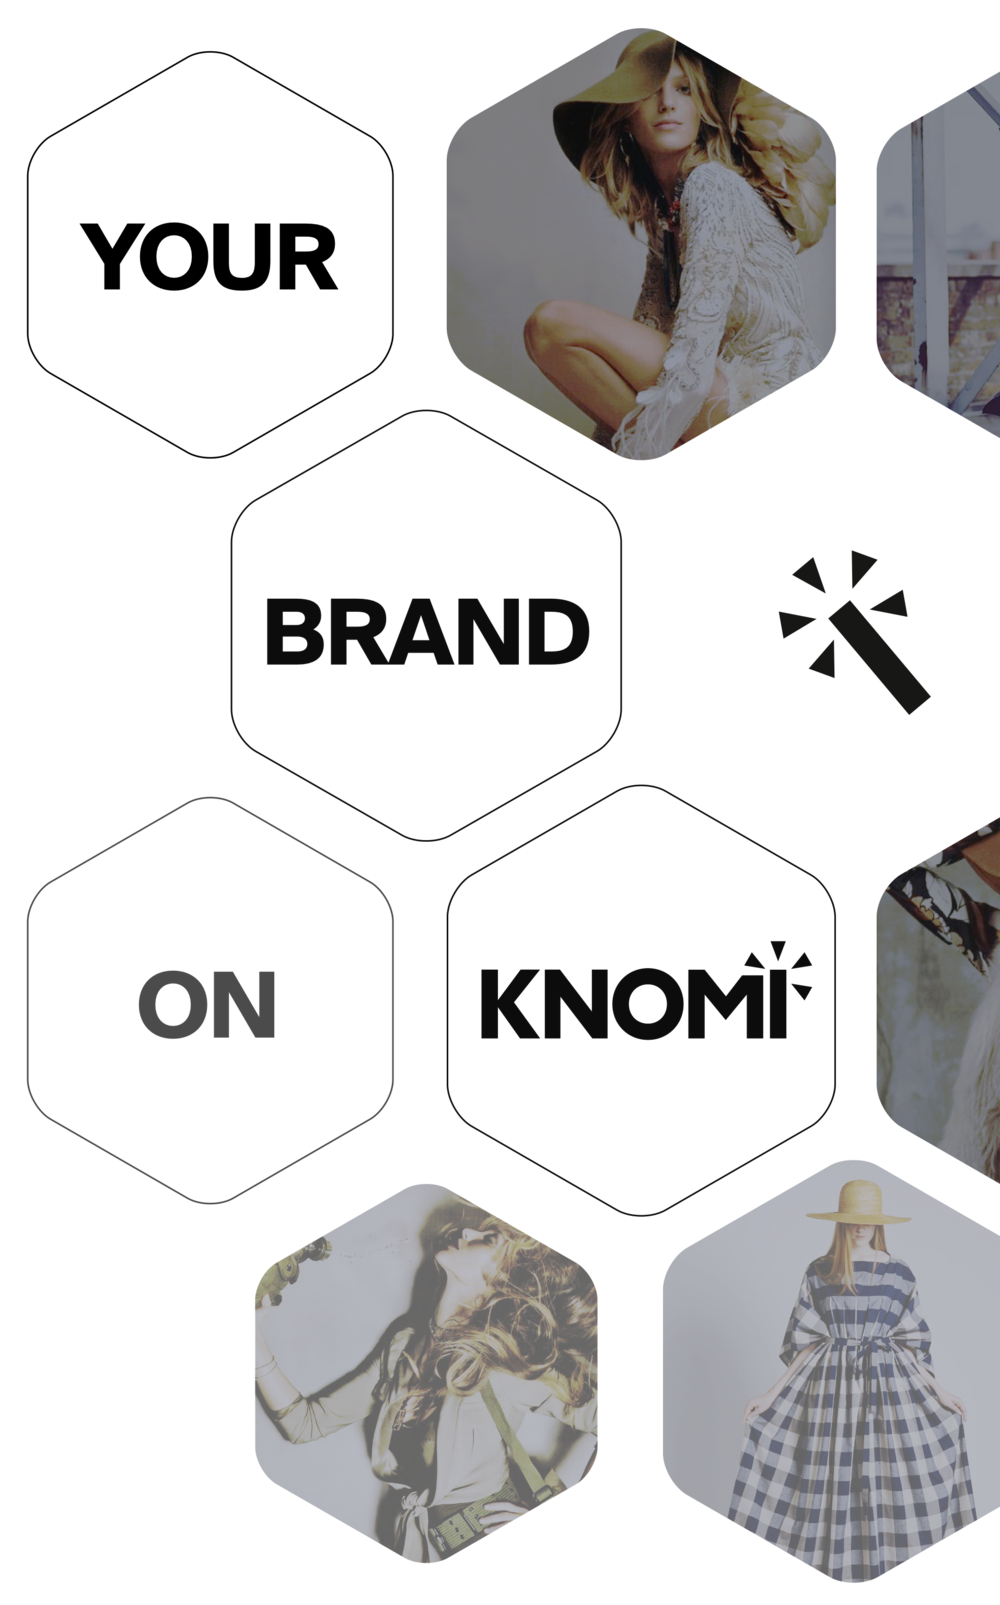 Partner with KNOMI - retail partnership